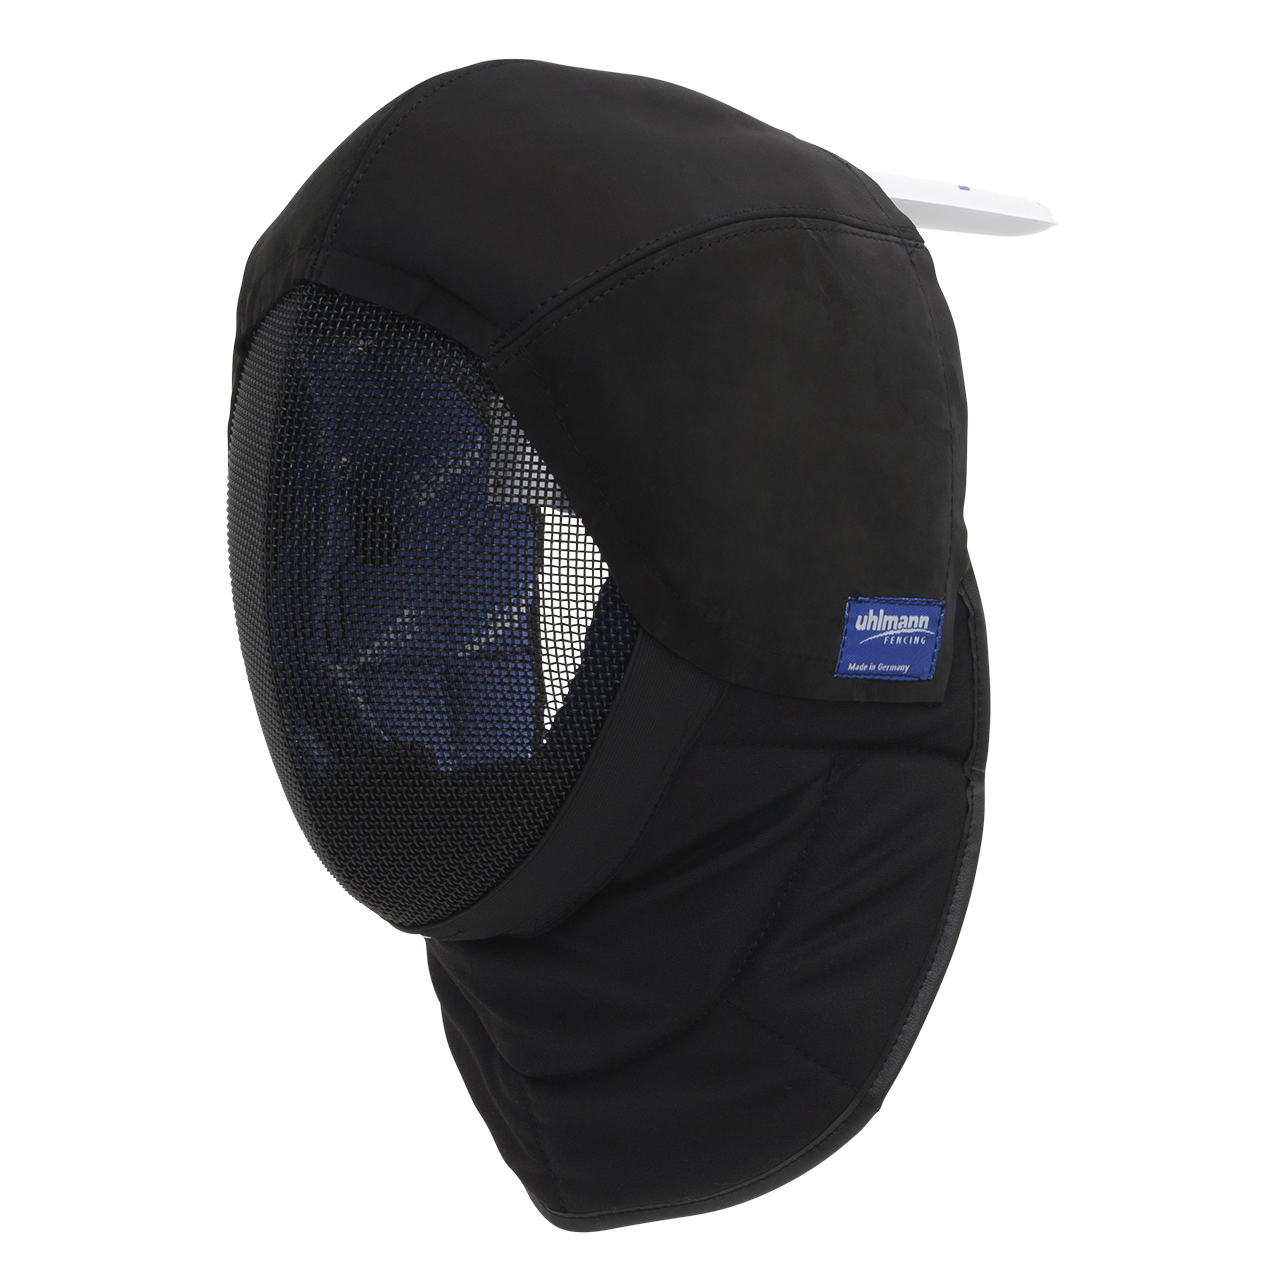 master fencing mask with leather padding 350N